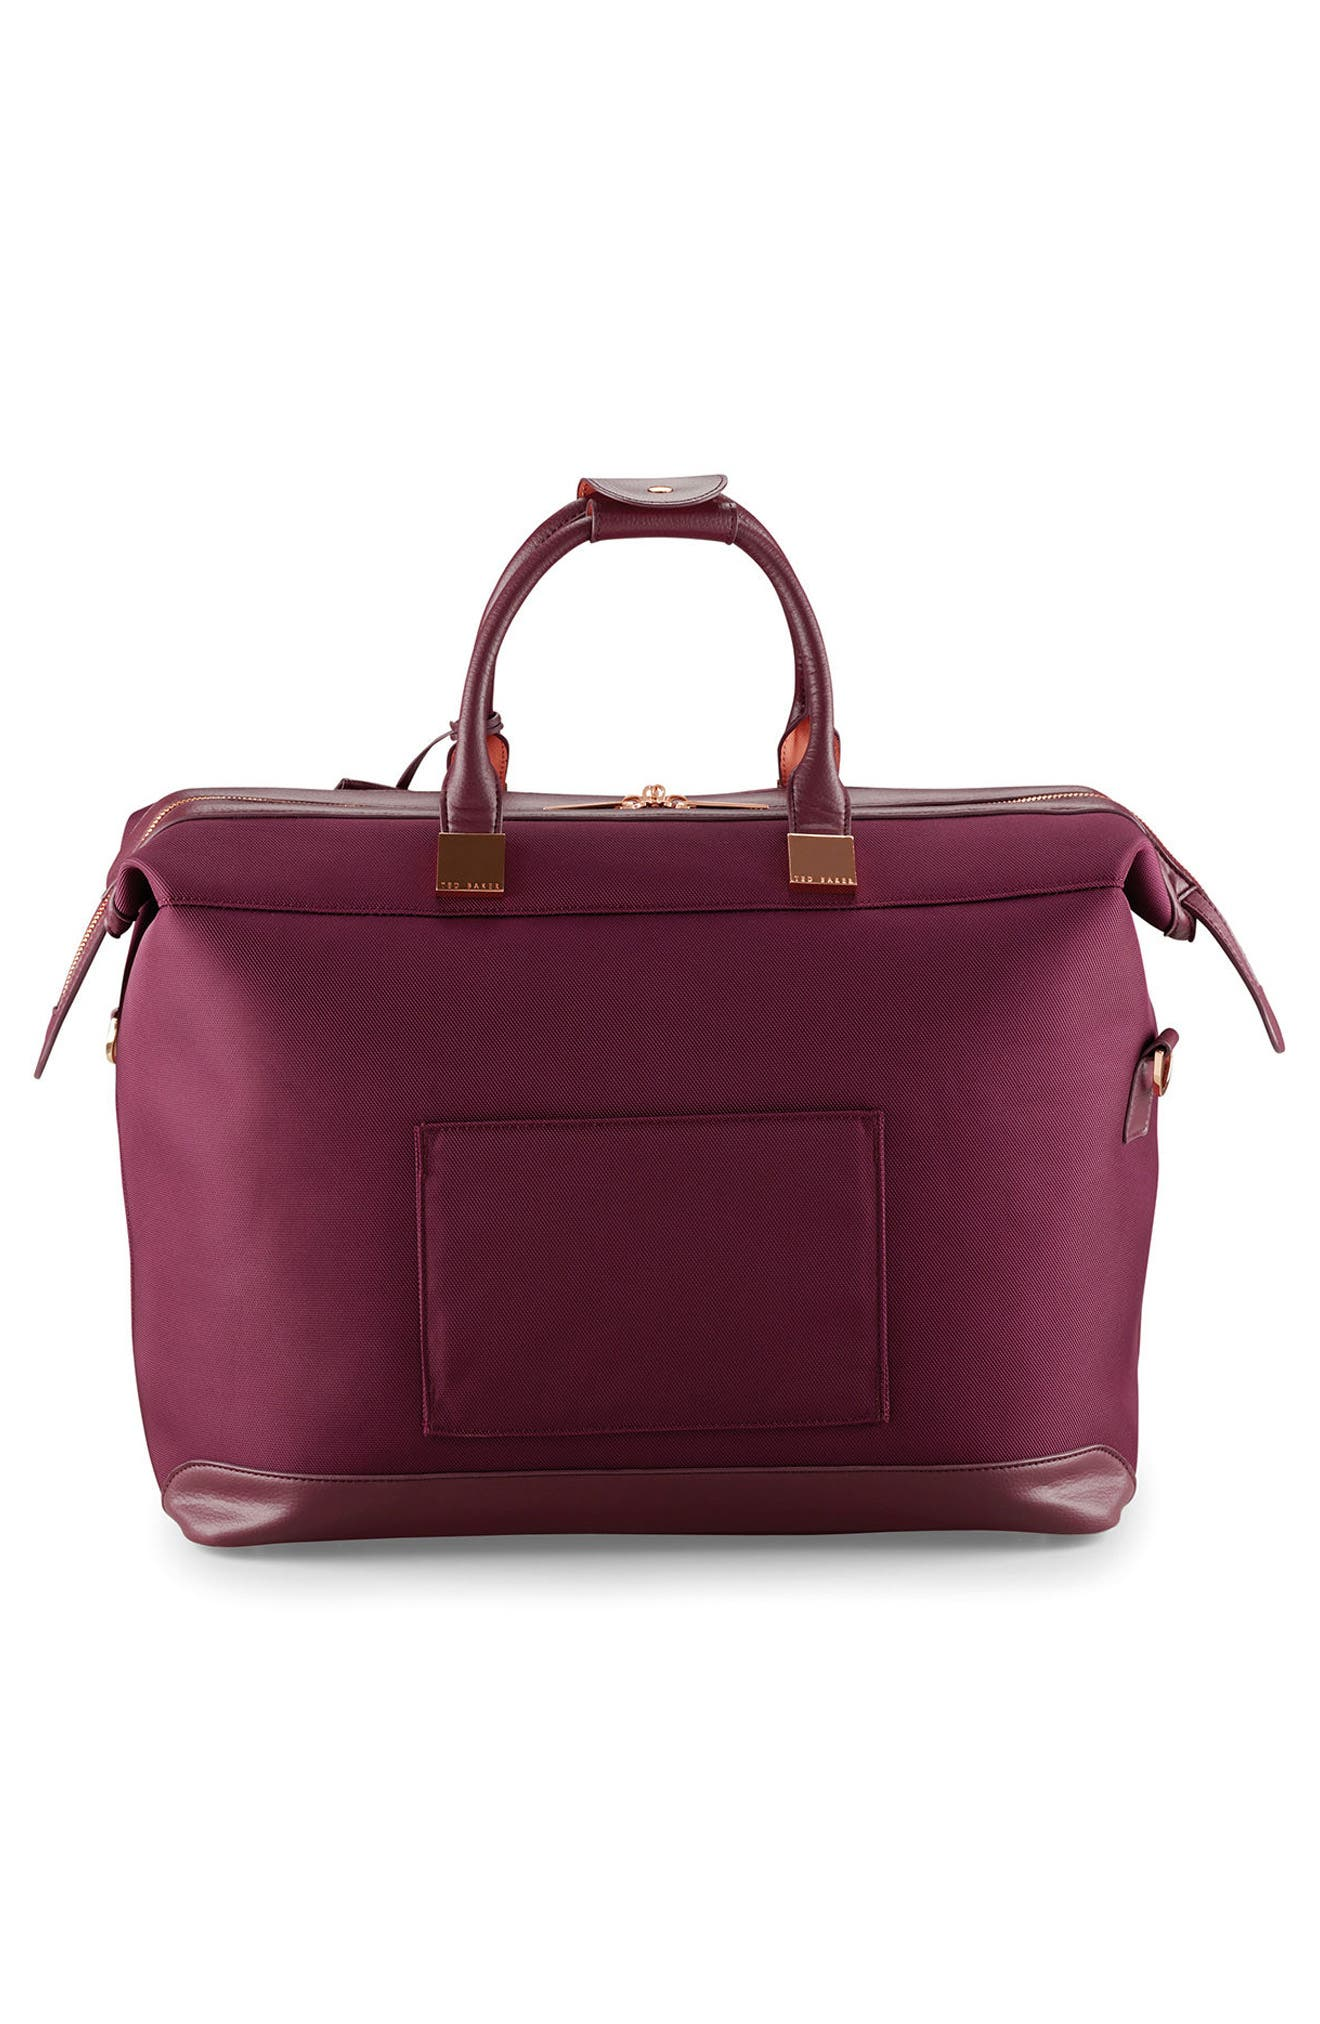 TED BAKER LONDON, Small Clipper Duffle Bag, Alternate thumbnail 4, color, BURGUNDY